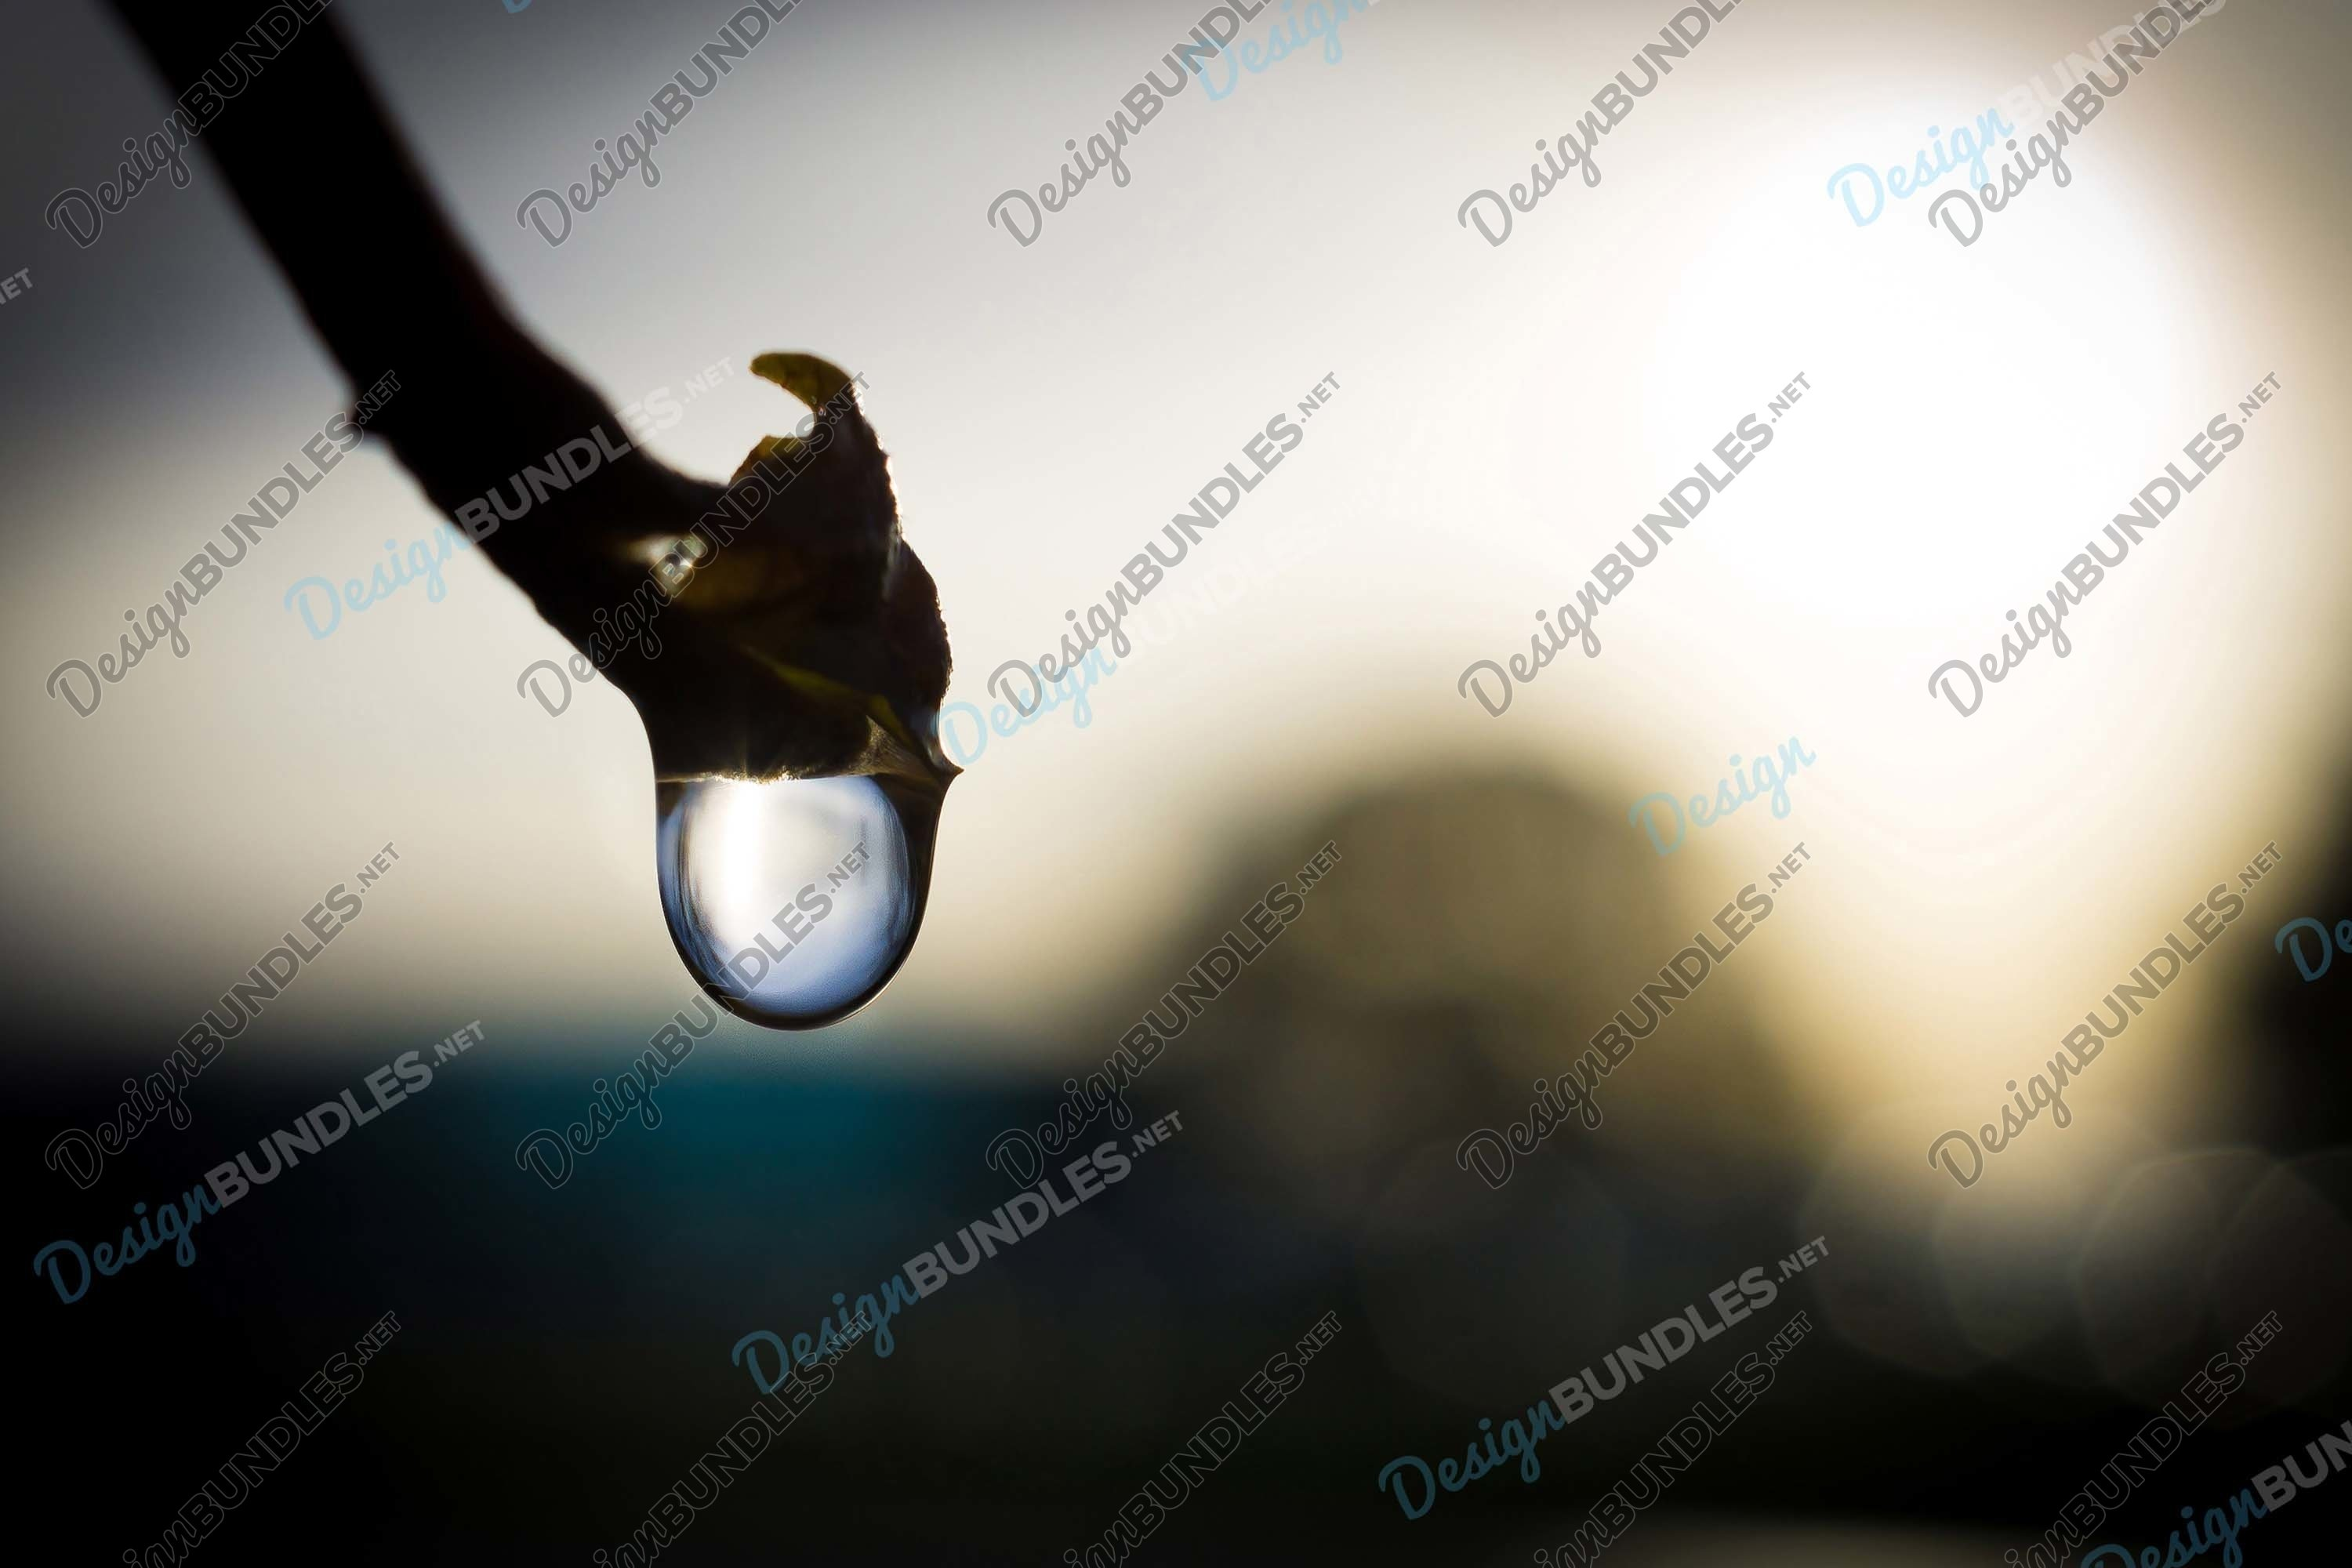 Stock Photo - water droplets example image 1